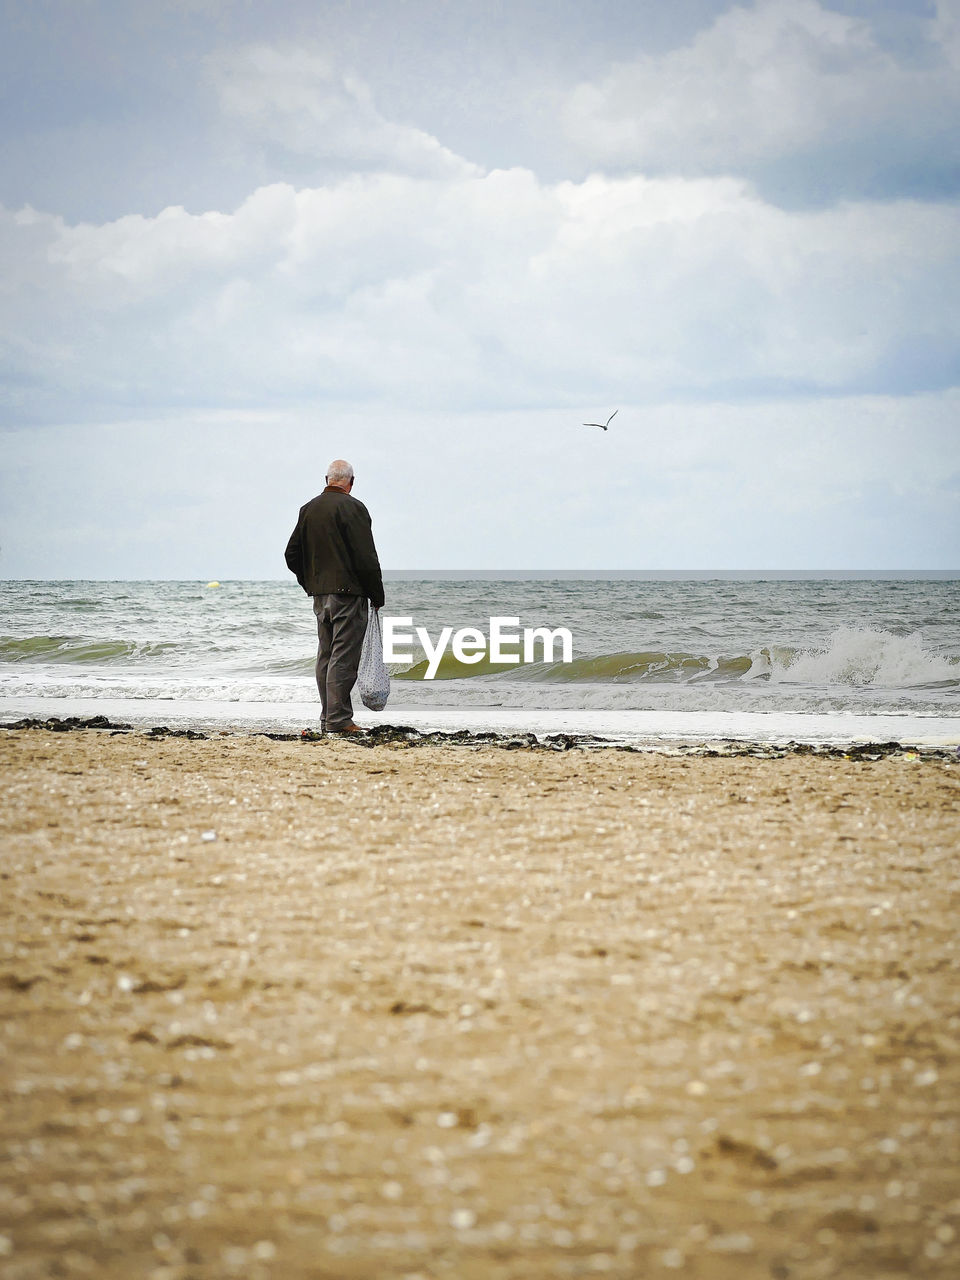 sea, beach, land, water, one person, sky, cloud - sky, real people, horizon, beauty in nature, men, lifestyles, leisure activity, horizon over water, scenics - nature, standing, day, full length, outdoors